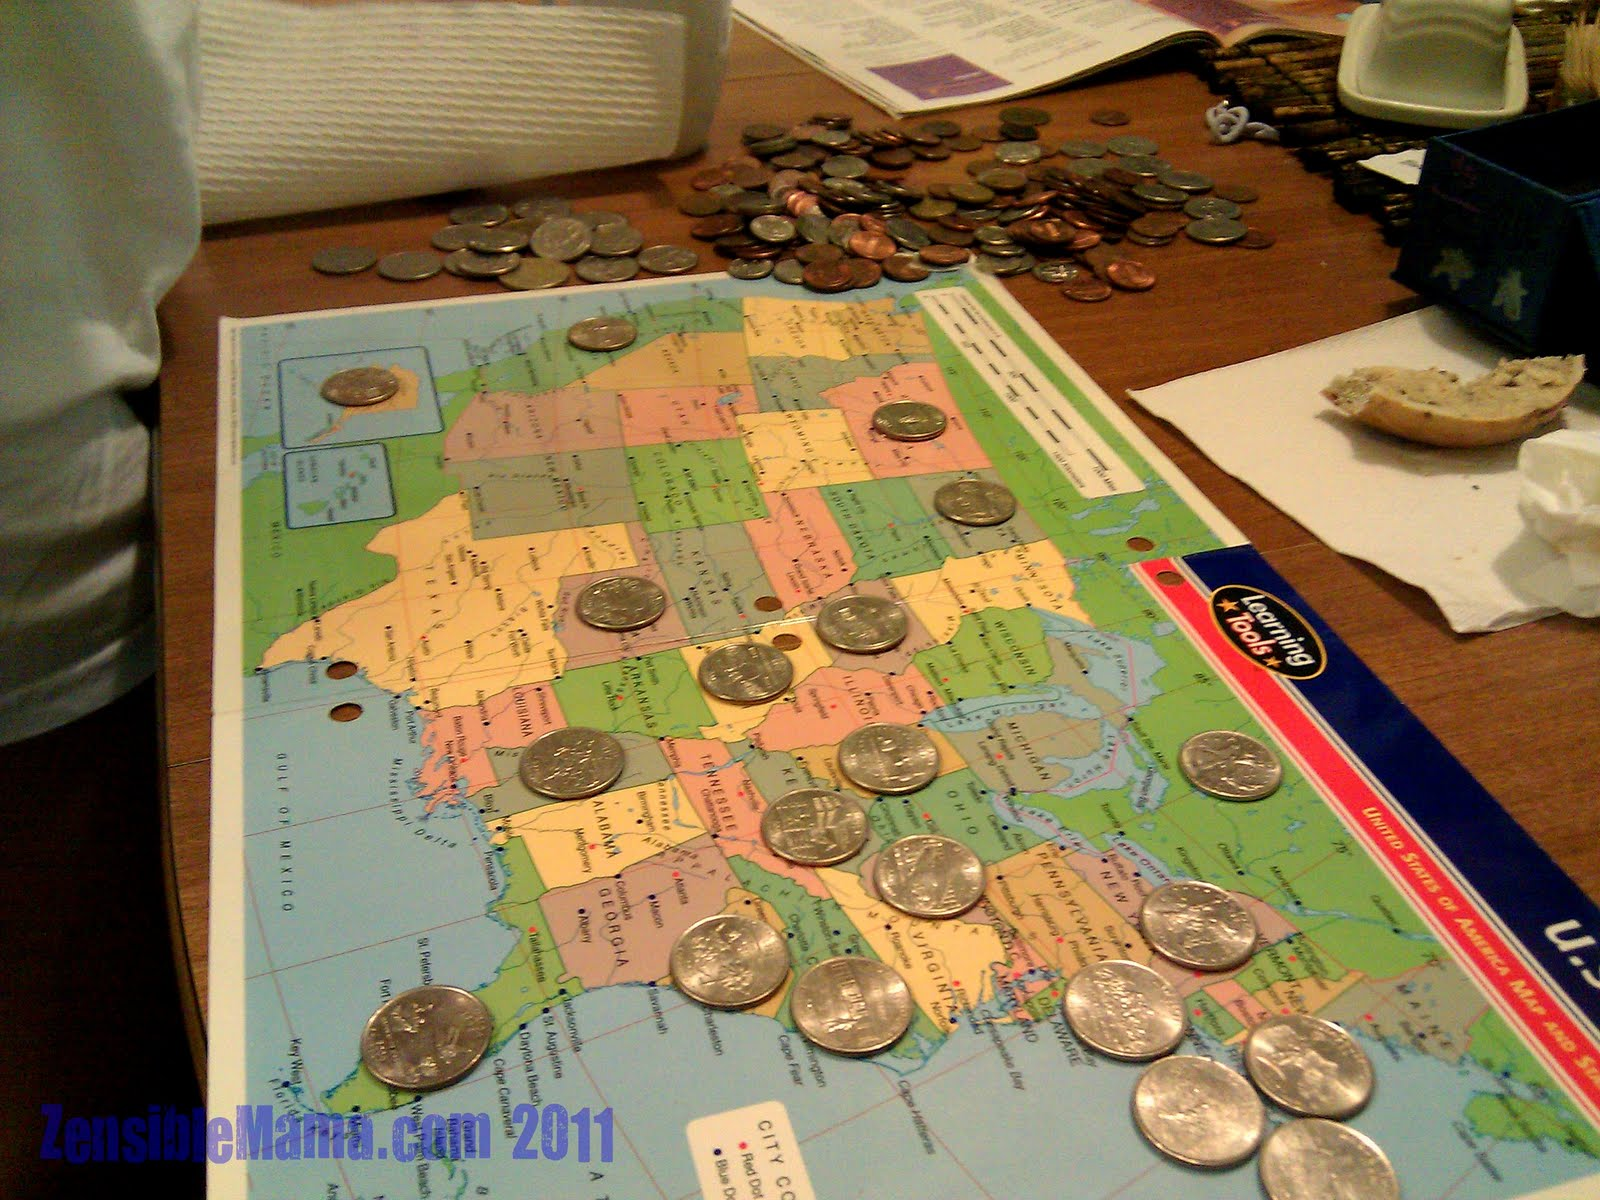 Simple Instruction Just Find The Right Coin And Let Your Child Find The States Corresponding To The Coin In Hand Let Your Child Read The States Out Loud